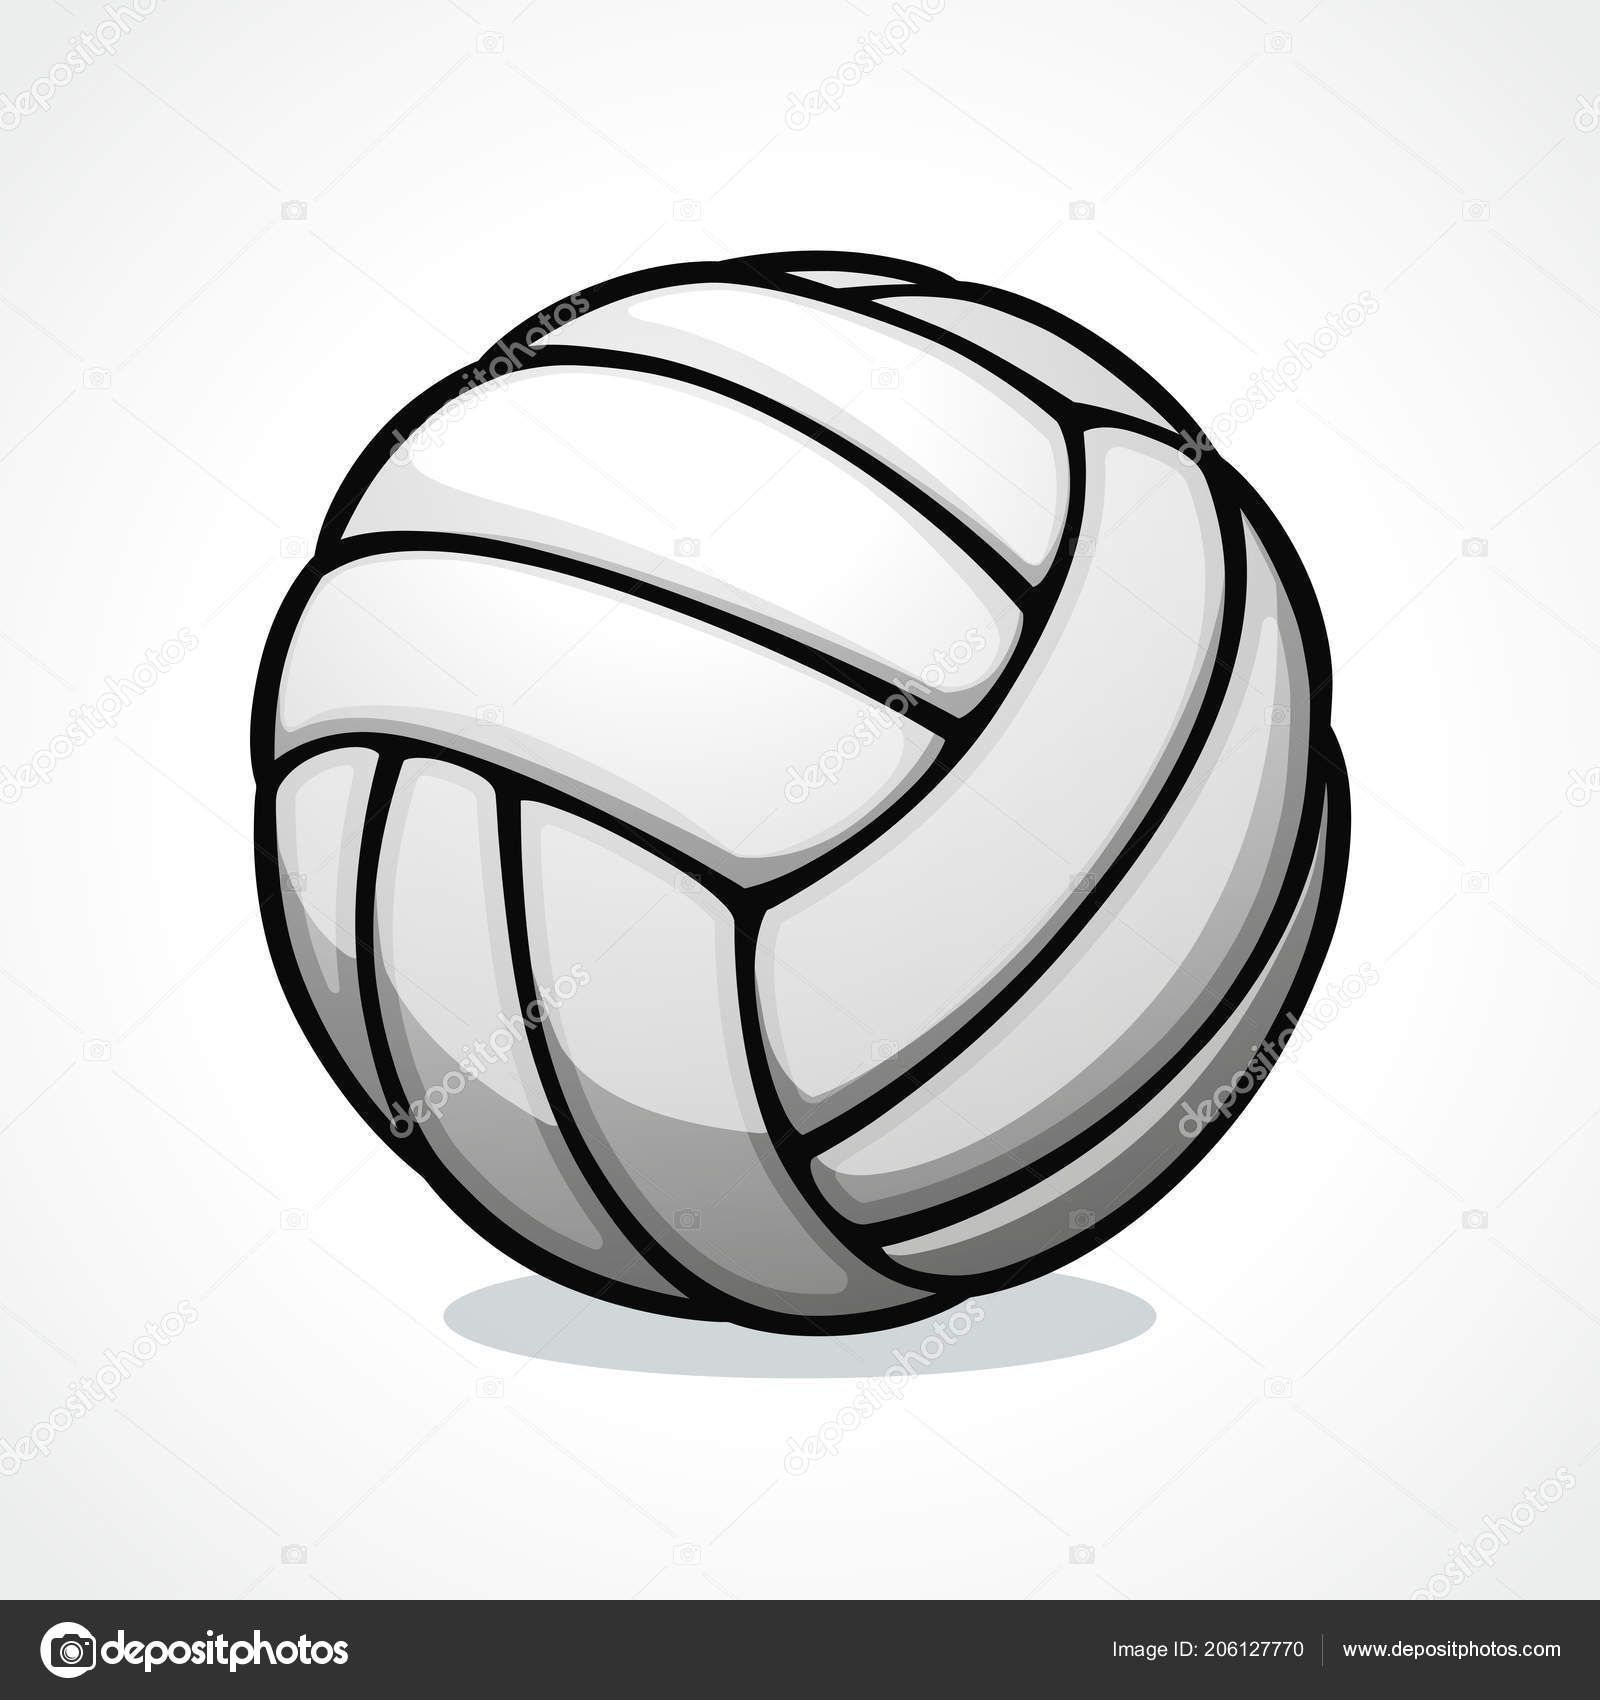 Vector Illustration Volleyball Ball Volleyball Designs Vector Free Icon Design